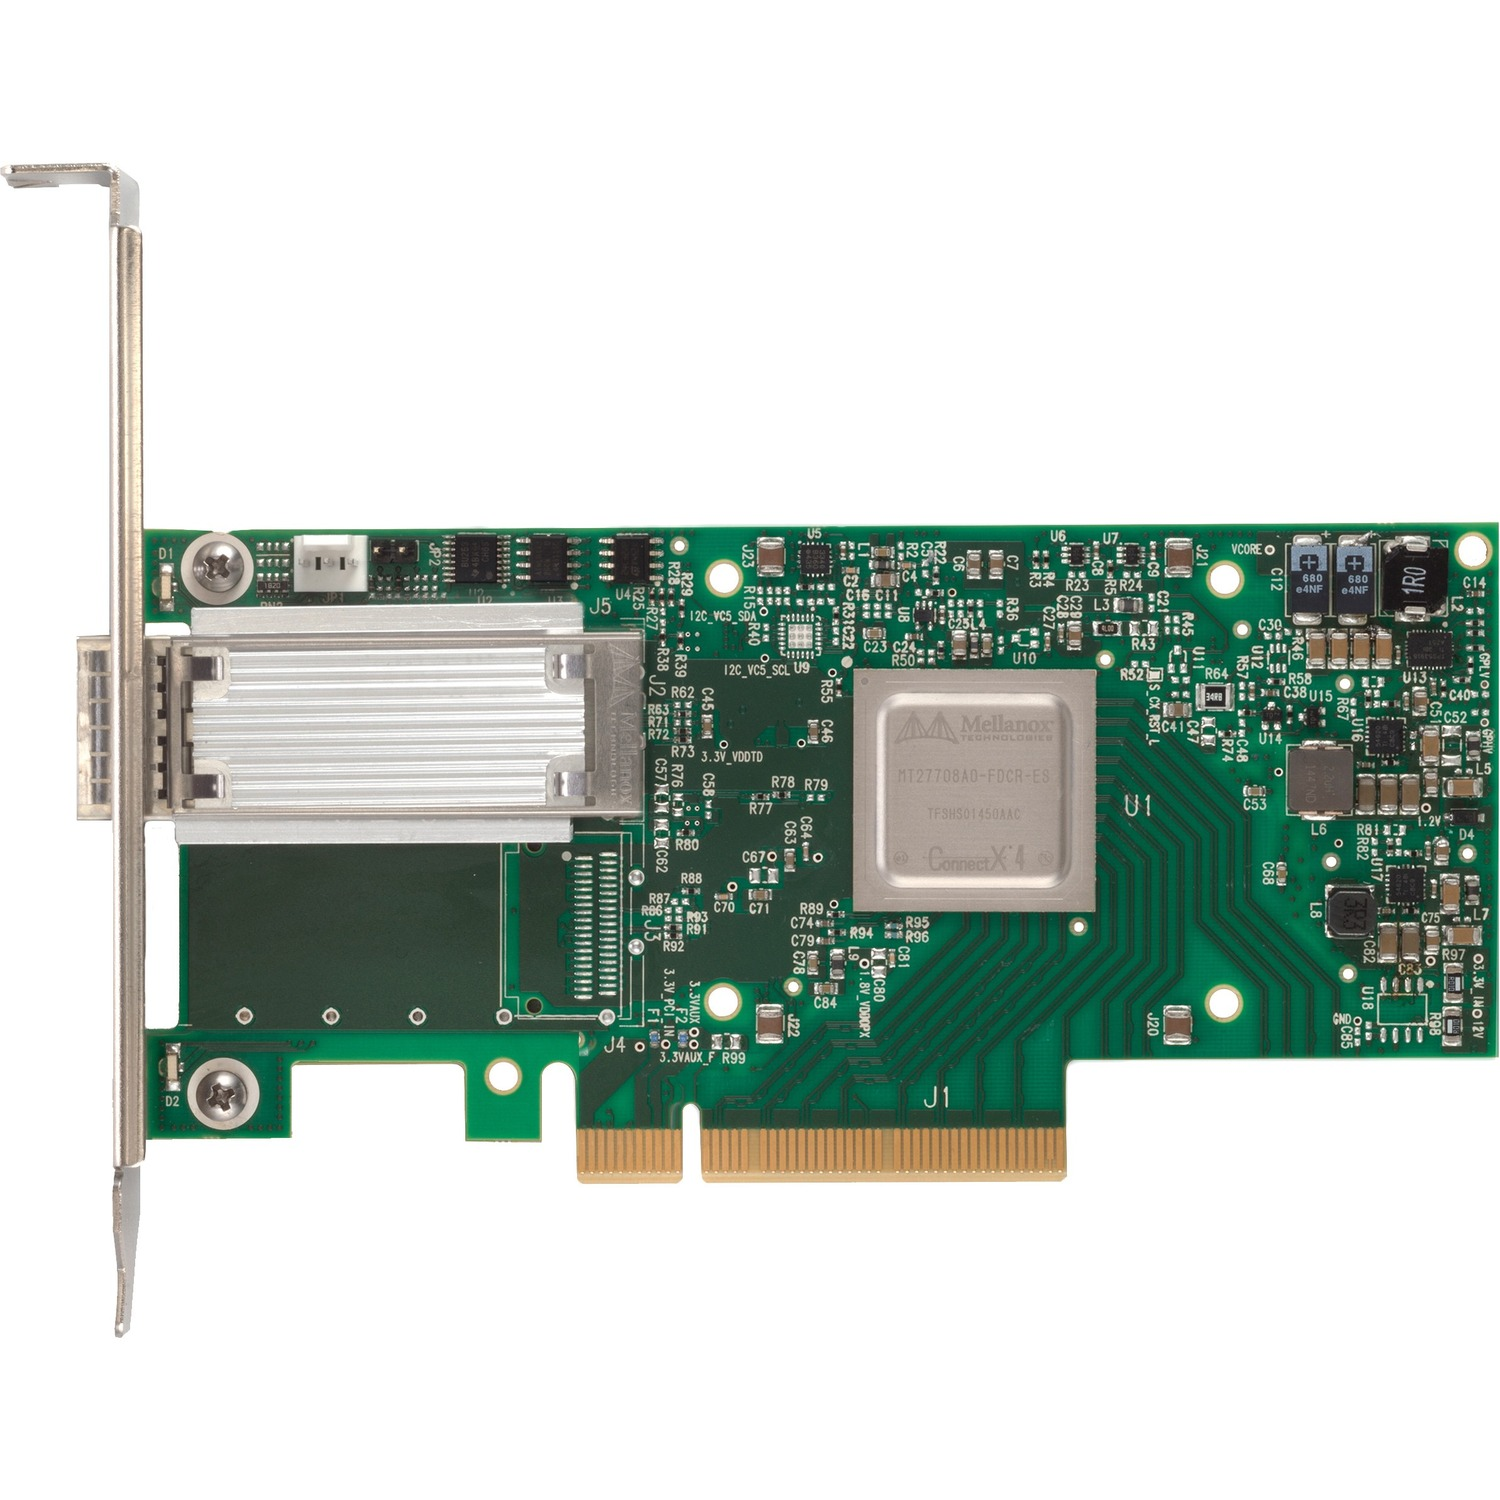 Mellanox ConnectX-4 100Gigabit Ethernet Card for Server - PCI Express 3.0 x16 - 1 Ports - Optical Fiber